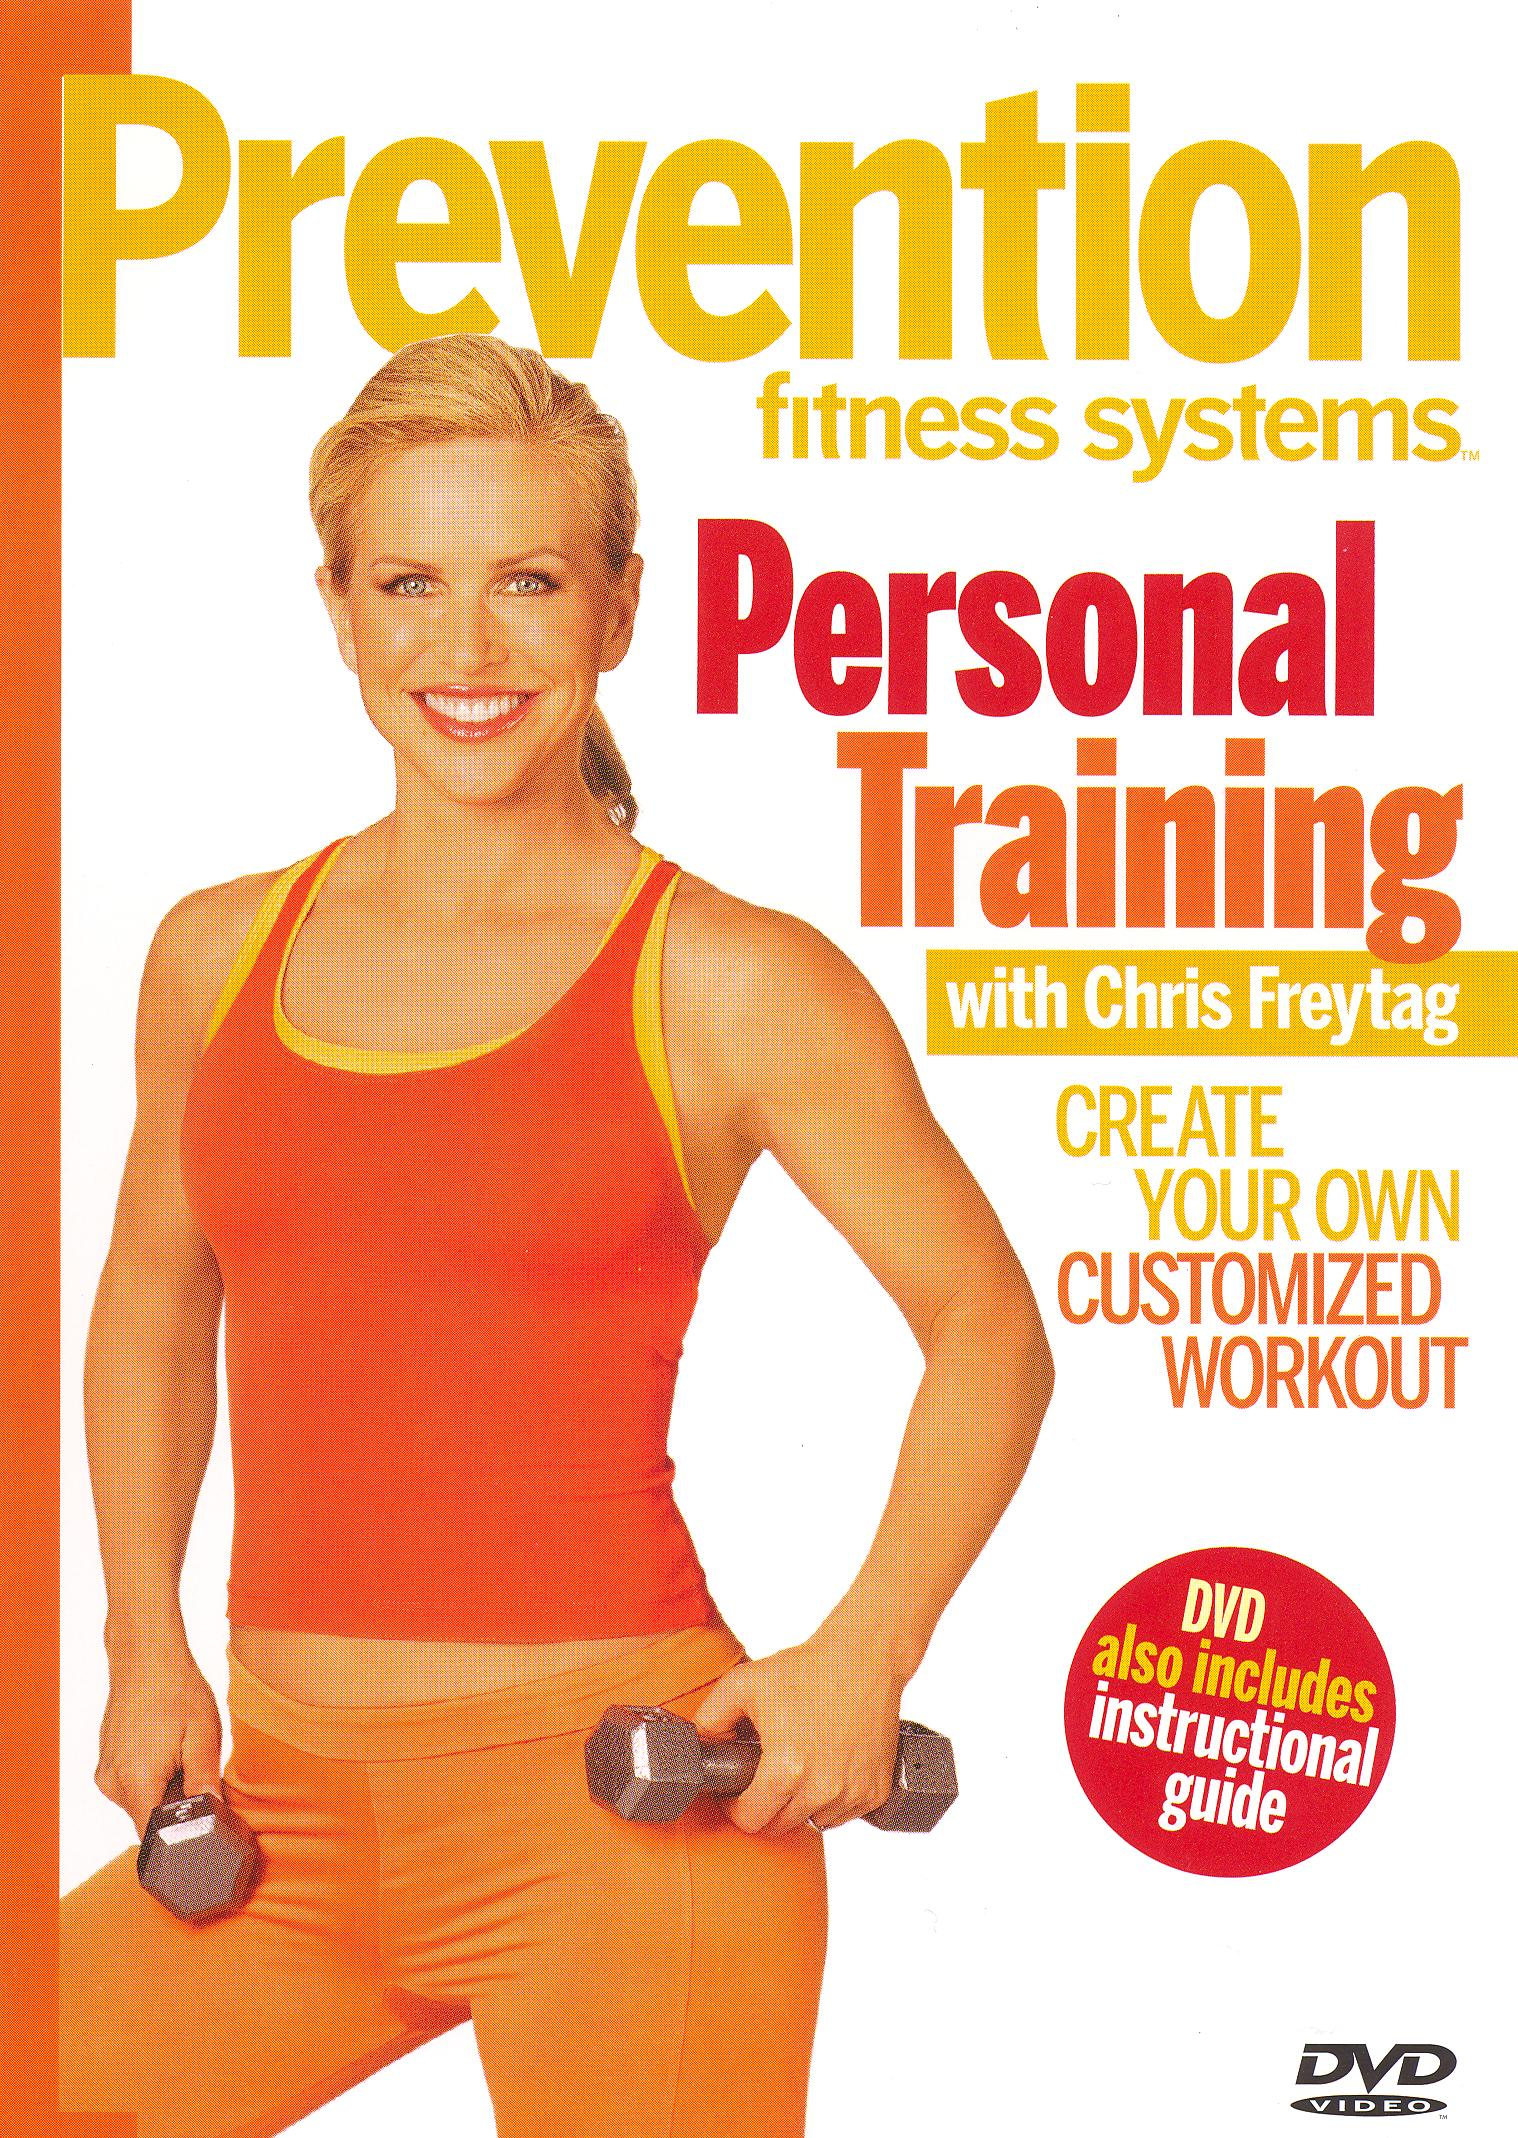 Prevention Fitness Systems: Personal Training